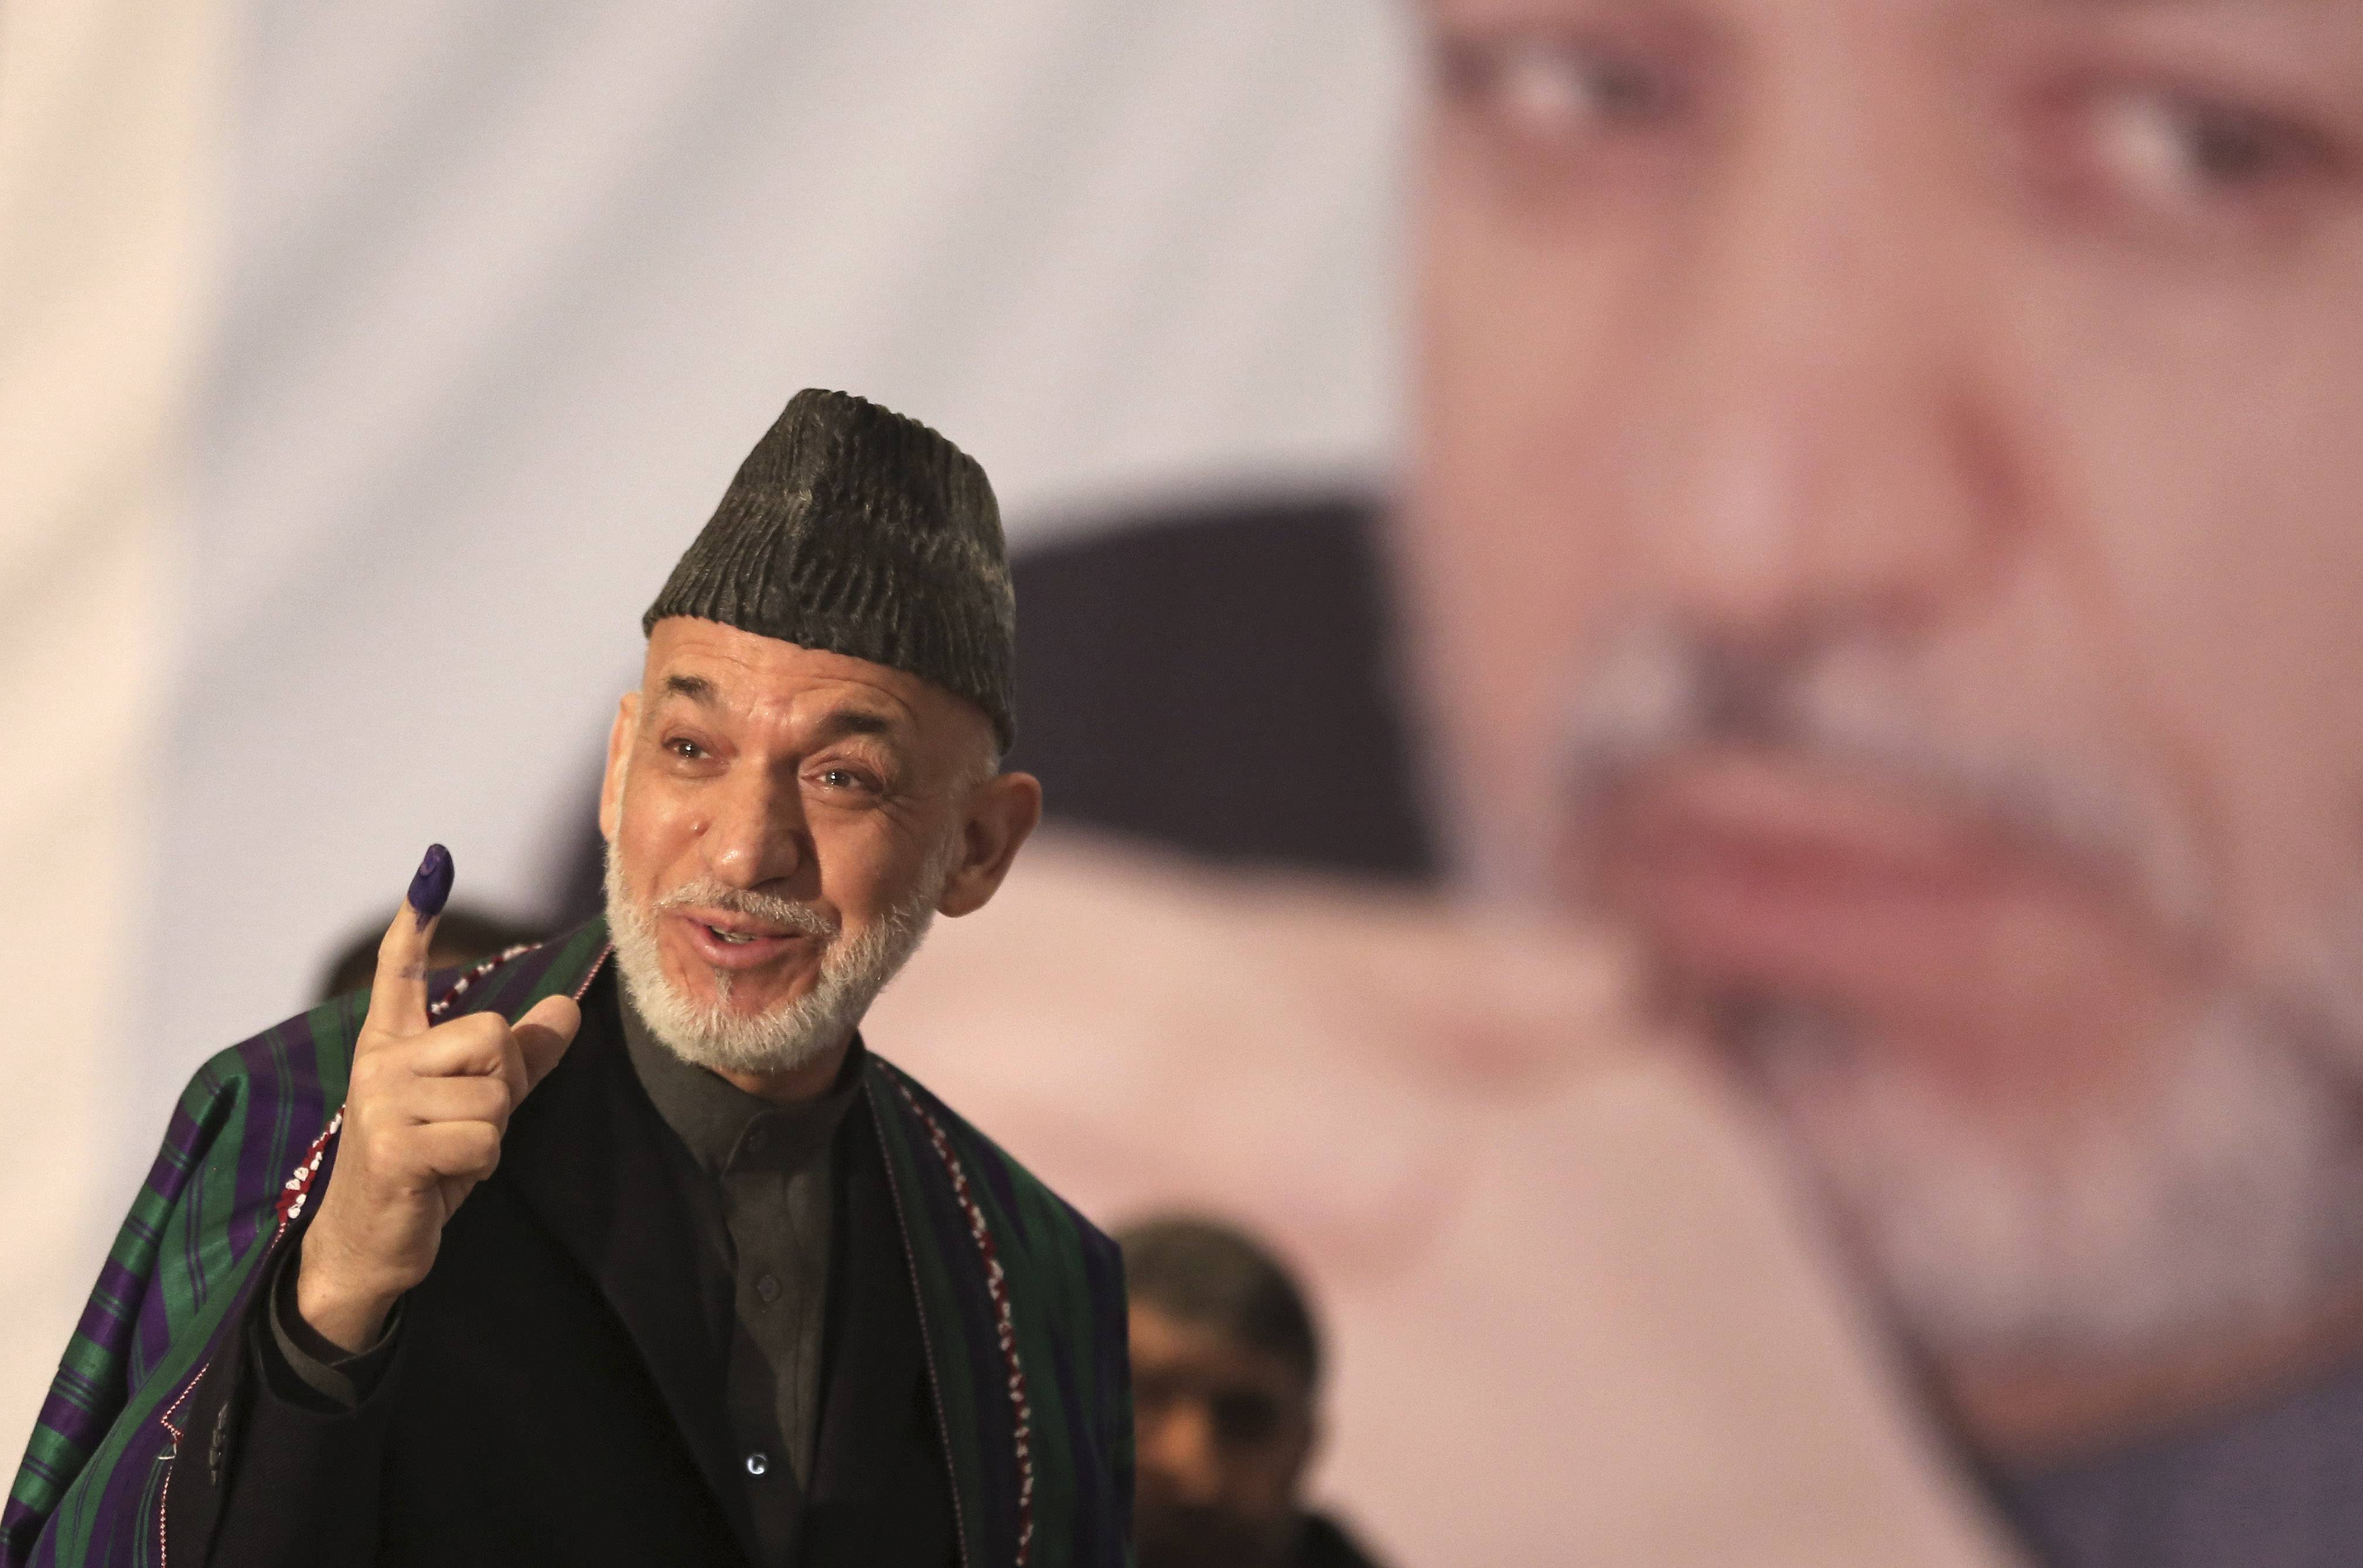 Afghan President Hamid Karzai shows indelible ink on his finger to the media before he casts his vote at Amani High School, near the presidential palace in Kabul, Afghanistan, Saturday.